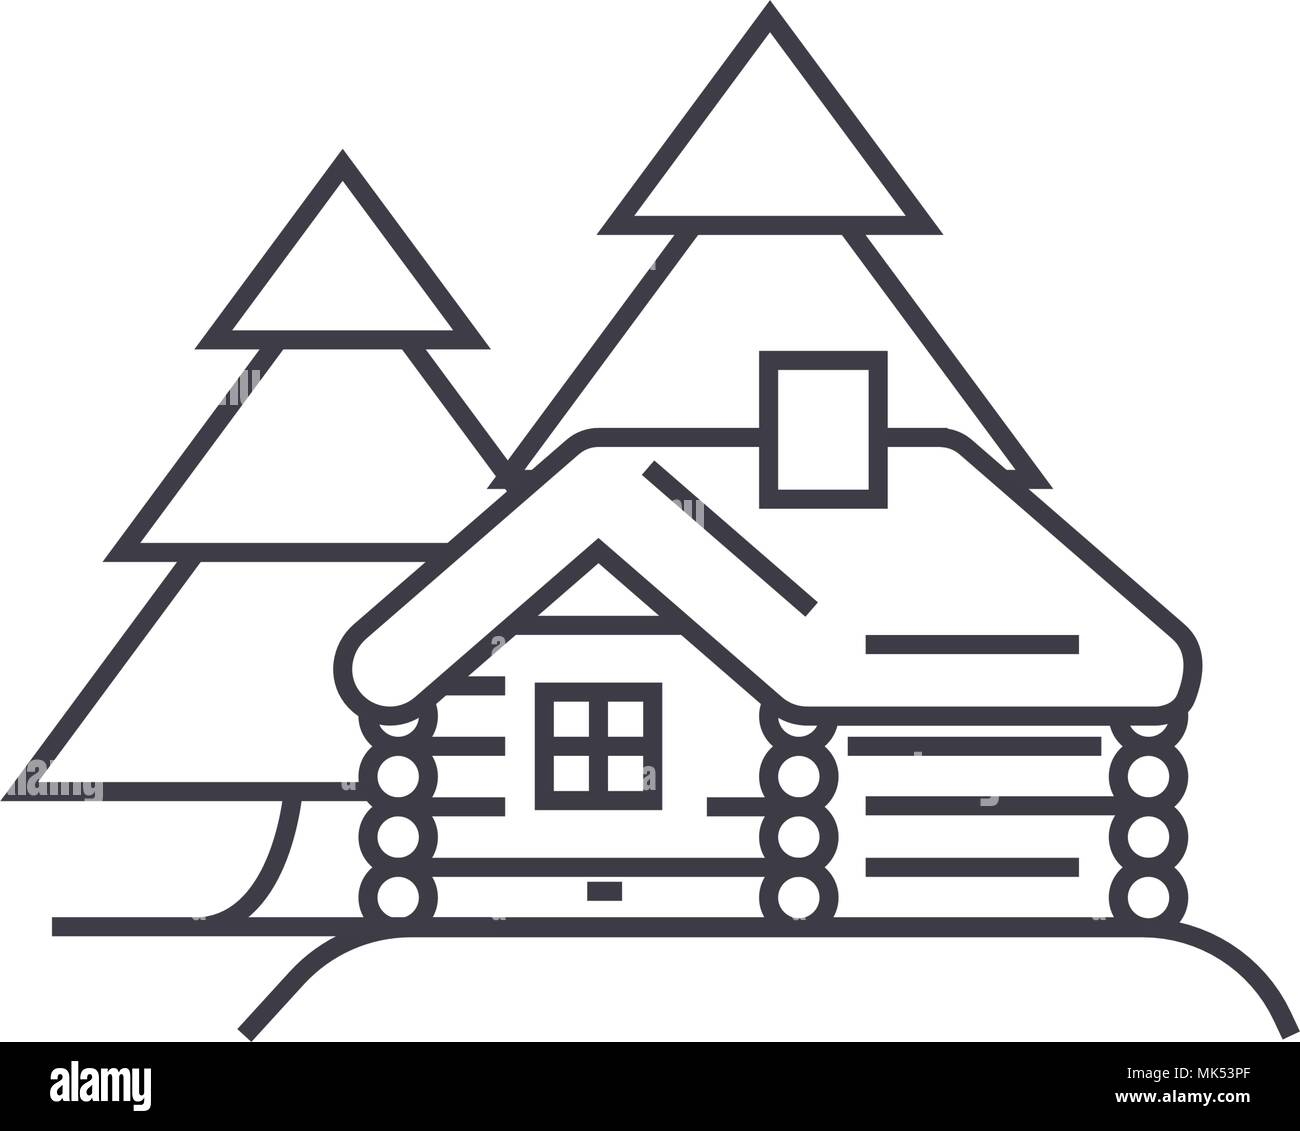 log cabin vector line icon, sign, illustration on background, editable strokes - Stock Vector